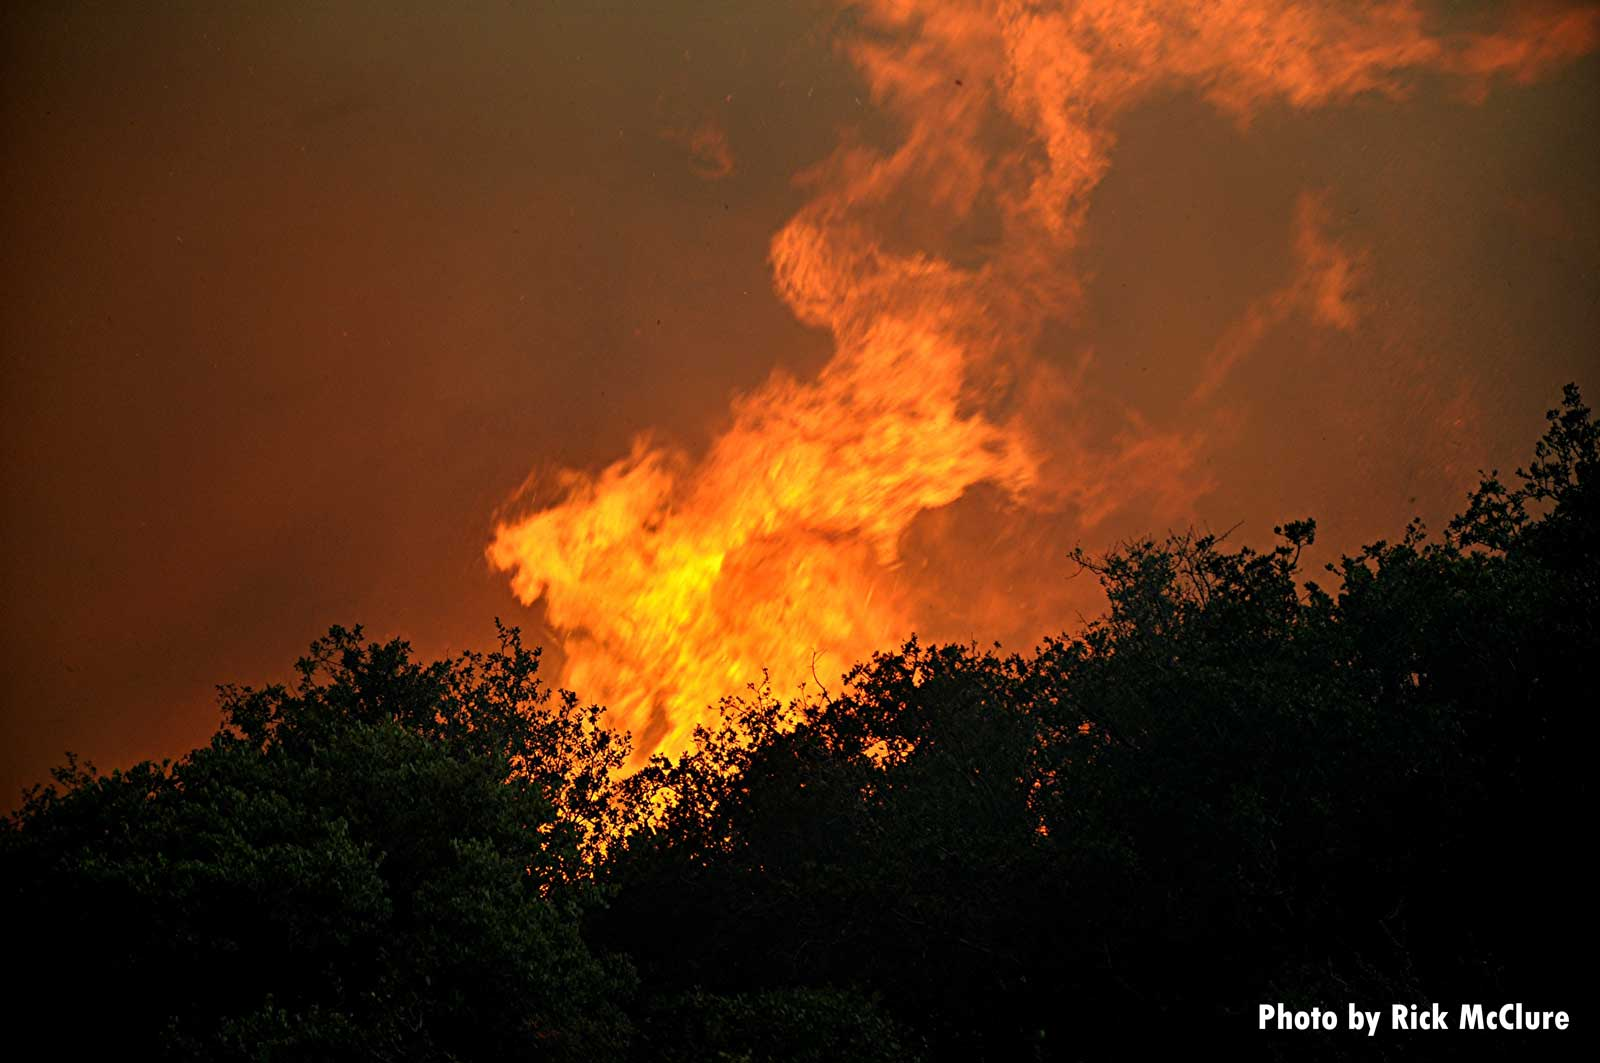 Raging flames over forest canopy